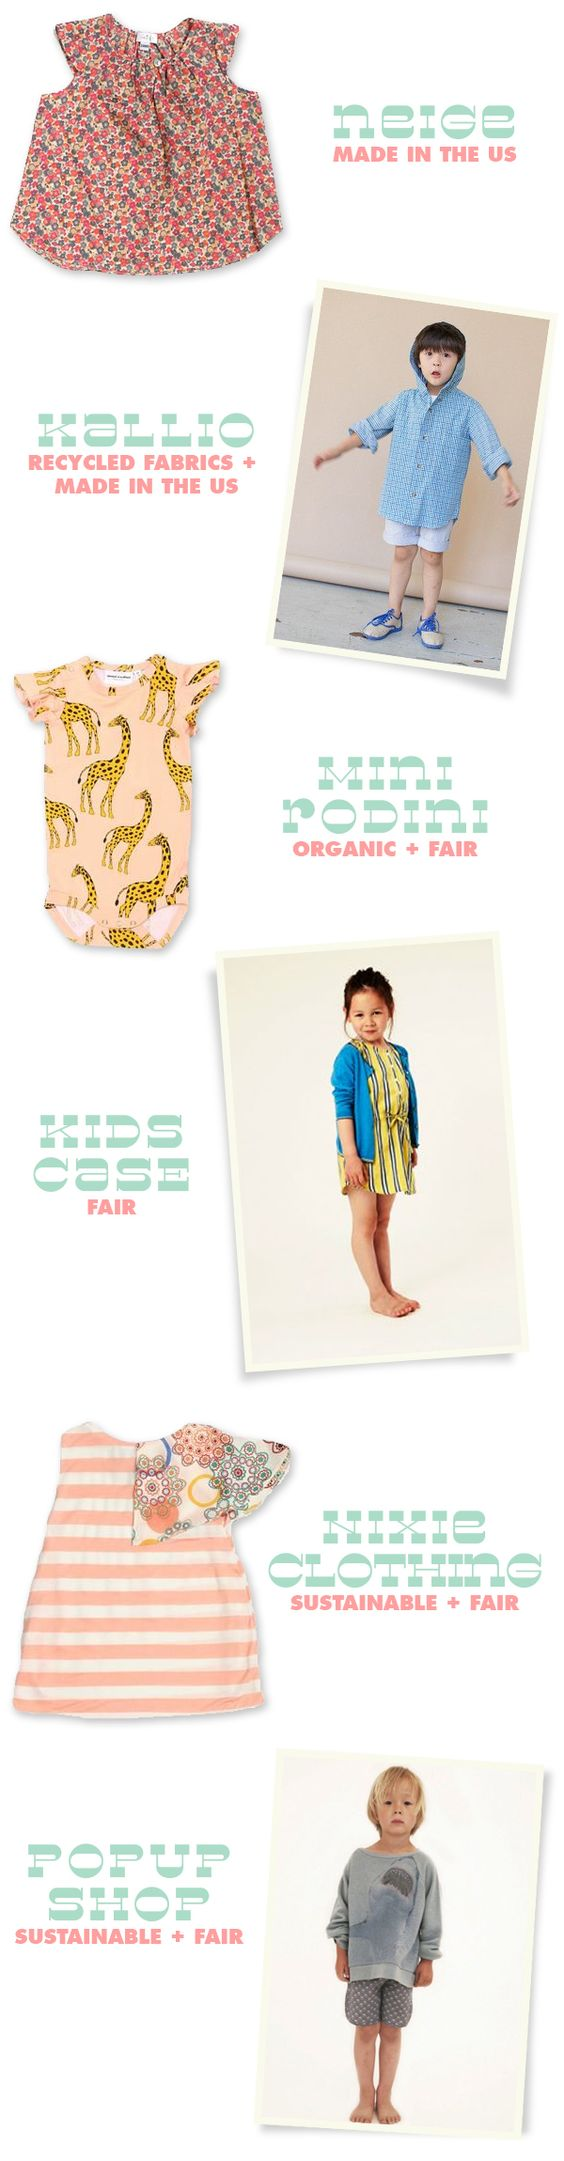 Ethical Kids Clothing - Where to Shop